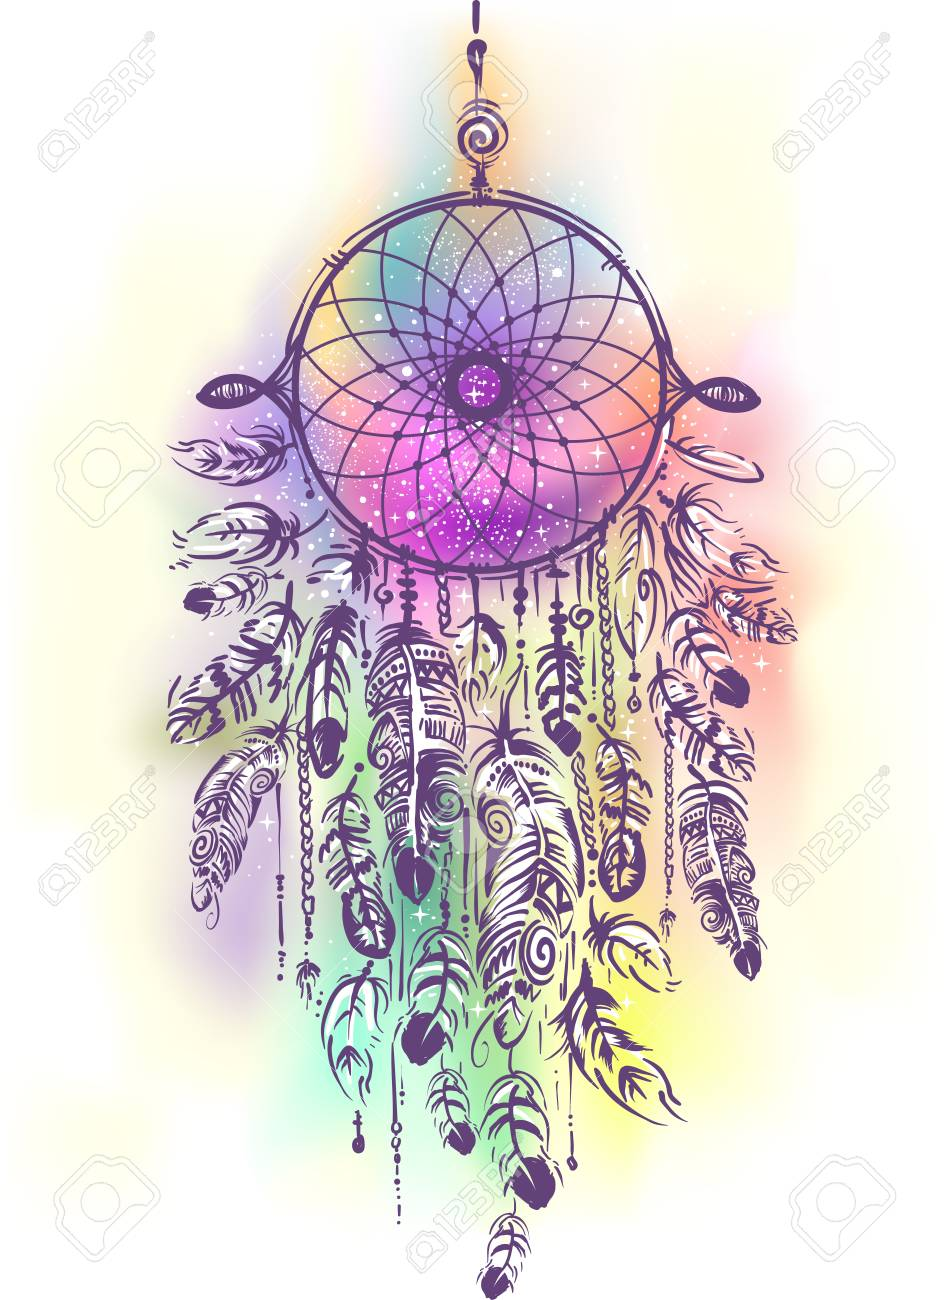 - Illustration Of A Boho Dream Catcher With Lots Of Feathers And